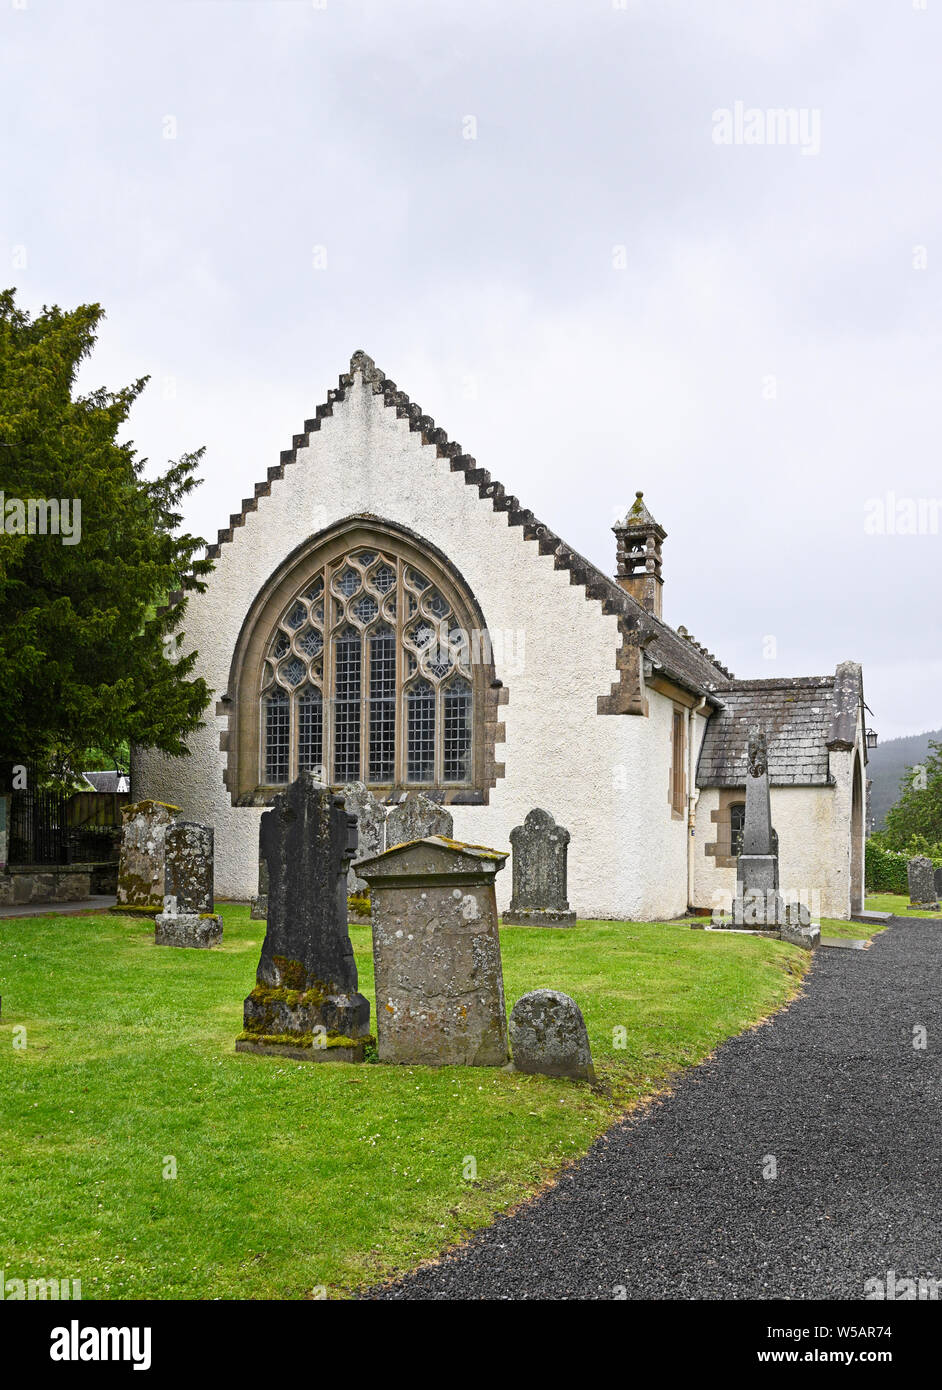 The Parish Church, Fortingall, Gern Lyon, Perth and Kinross, Scotland, United Kingdom, Europe. Stock Photo